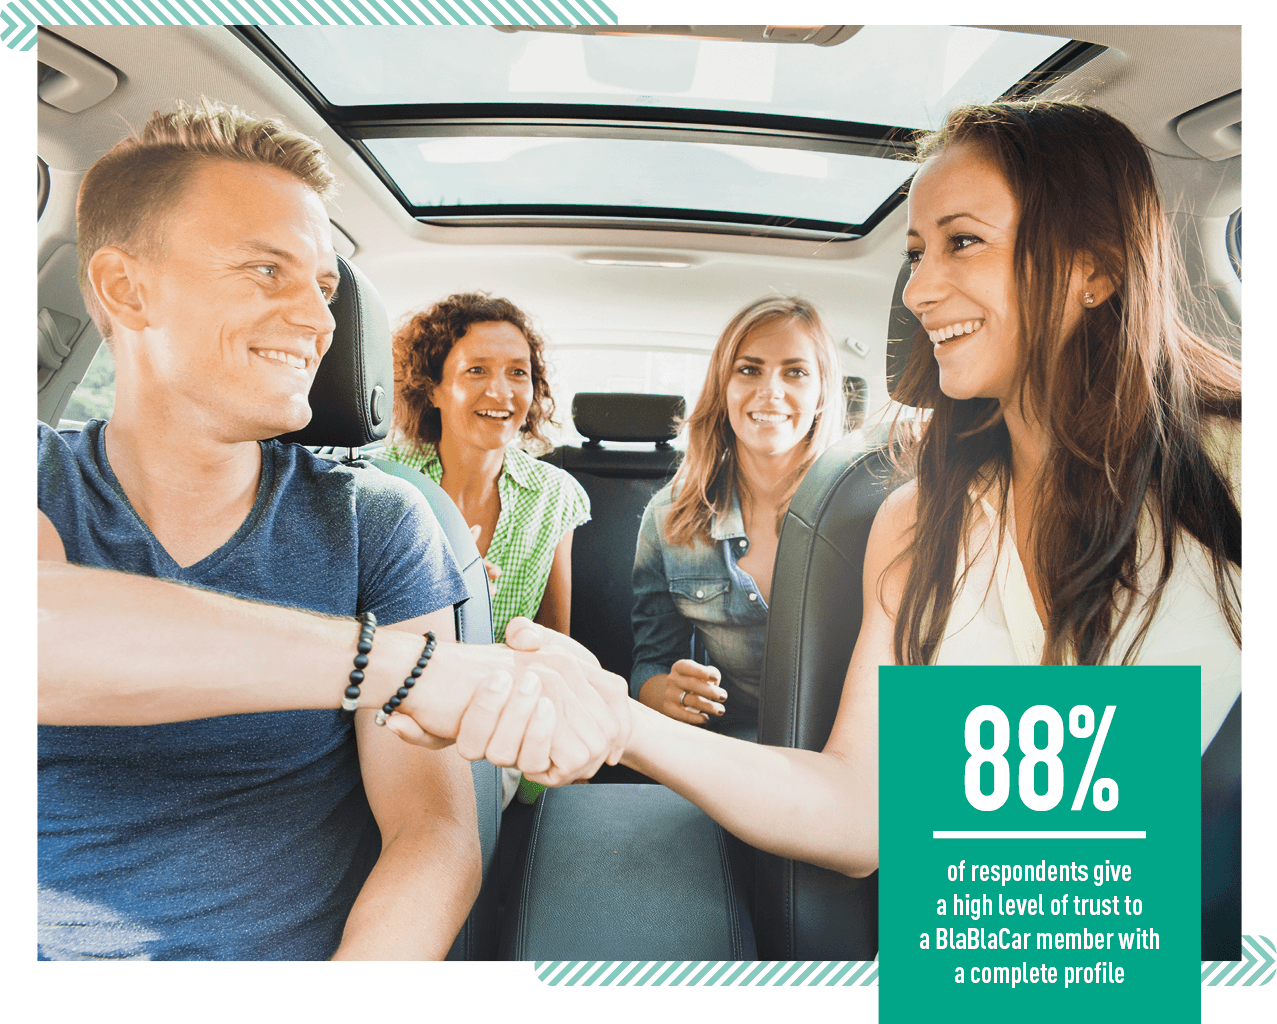 blablacar members are trusty